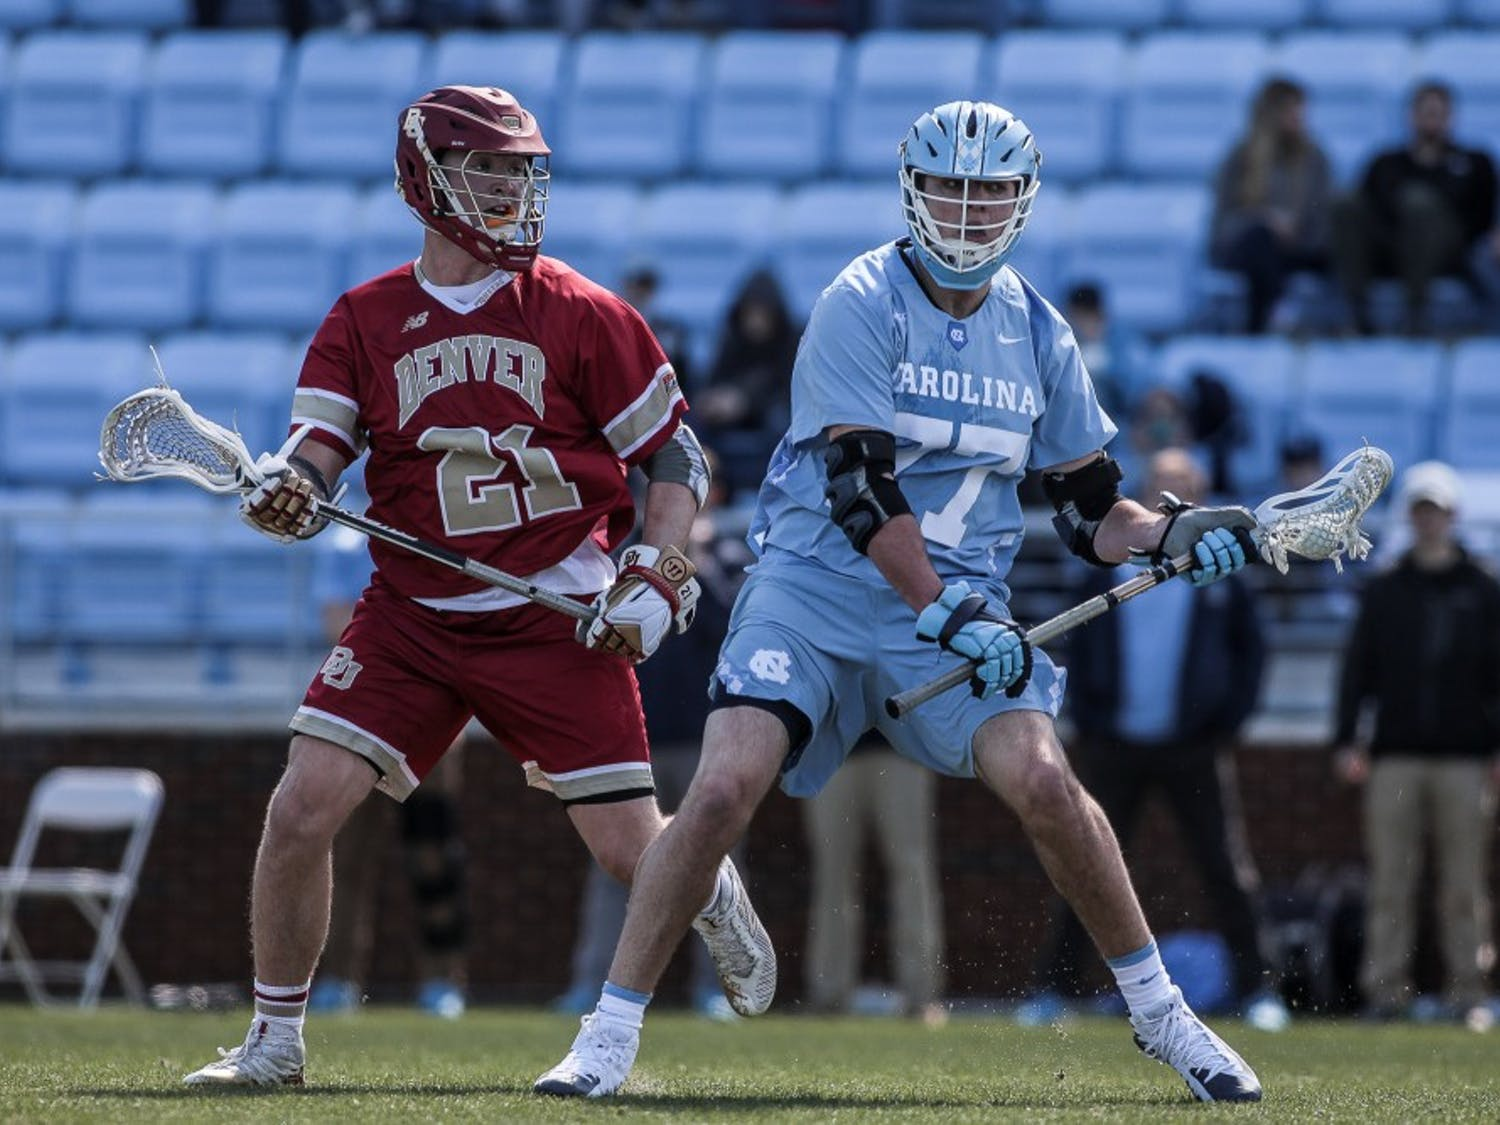 UNC junior midfielder Tanner Cook (77) fends the ball from Denver junior midfielder Kyle Smith (21) during UNC's 12-10 home loss against the University of Denver on Saturday, March 3, 2019 at the UNC Soccer and Lacrosse Stadium in Chapel Hill, N.C. This was the UNC Men's Lacrosse team's inaugural game at the UNC Soccer and Lacrosse Stadium.